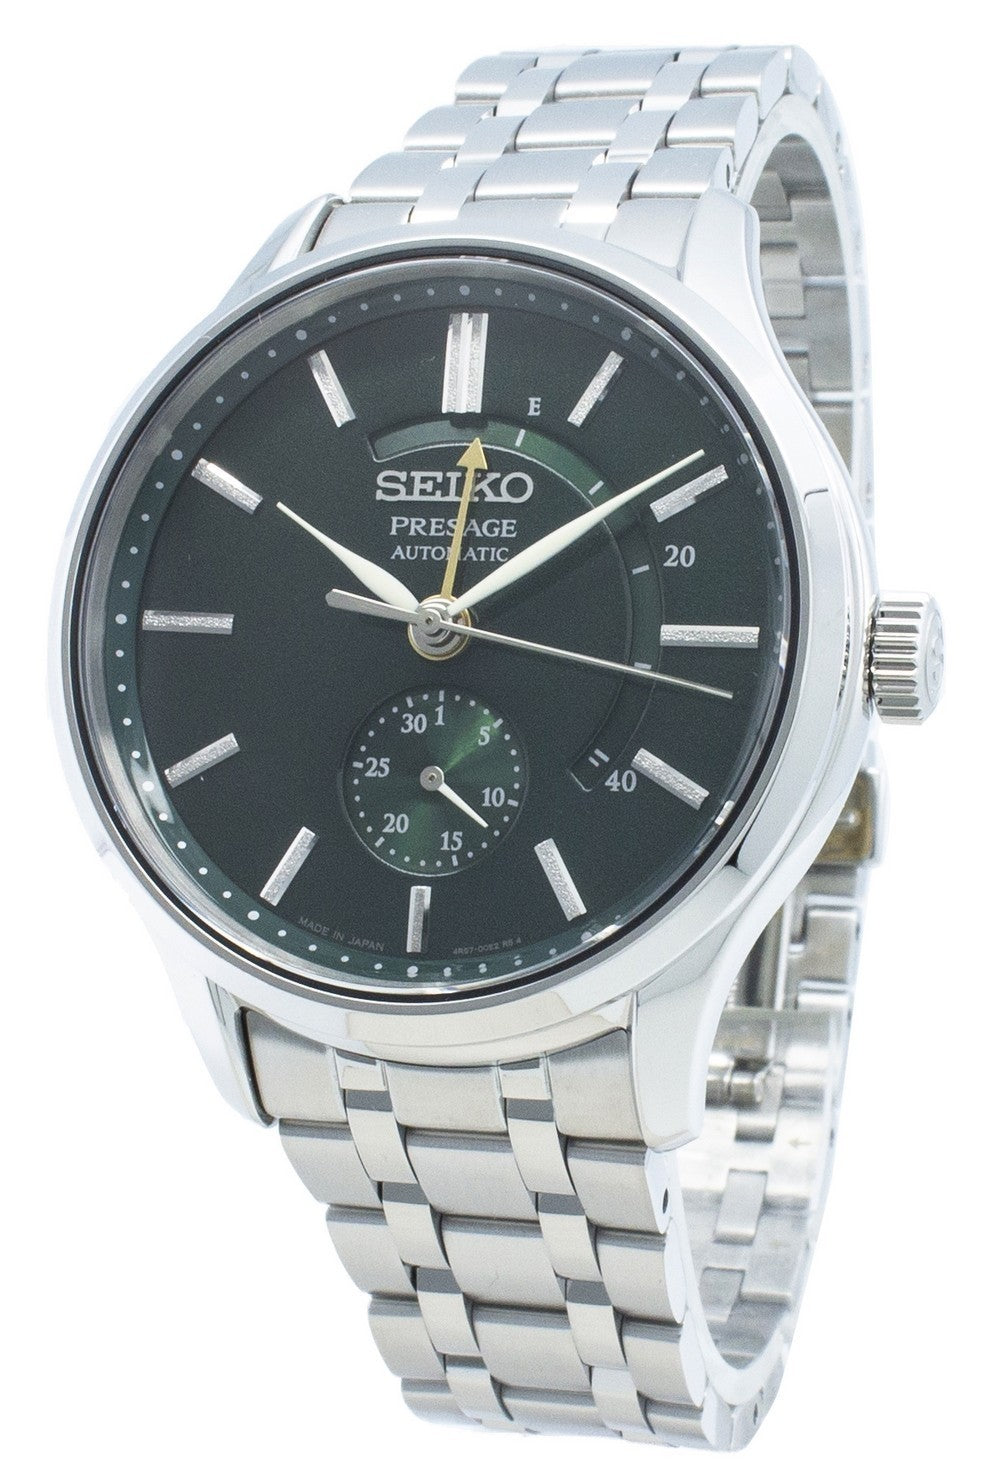 Seiko Presage SARY145 Automatic Japan Made Men's Watch